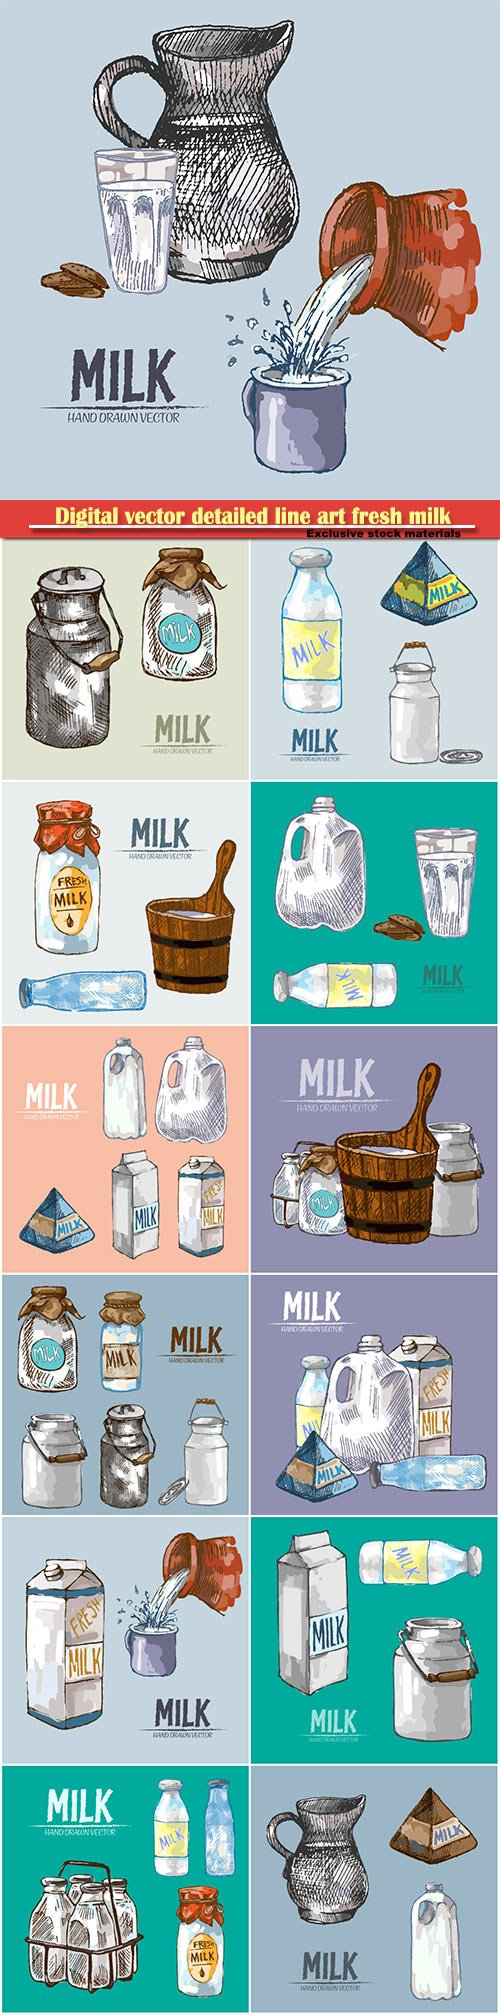 Digital vector detailed line art fresh milk in glass bottles hand drawn retro illustration collection set